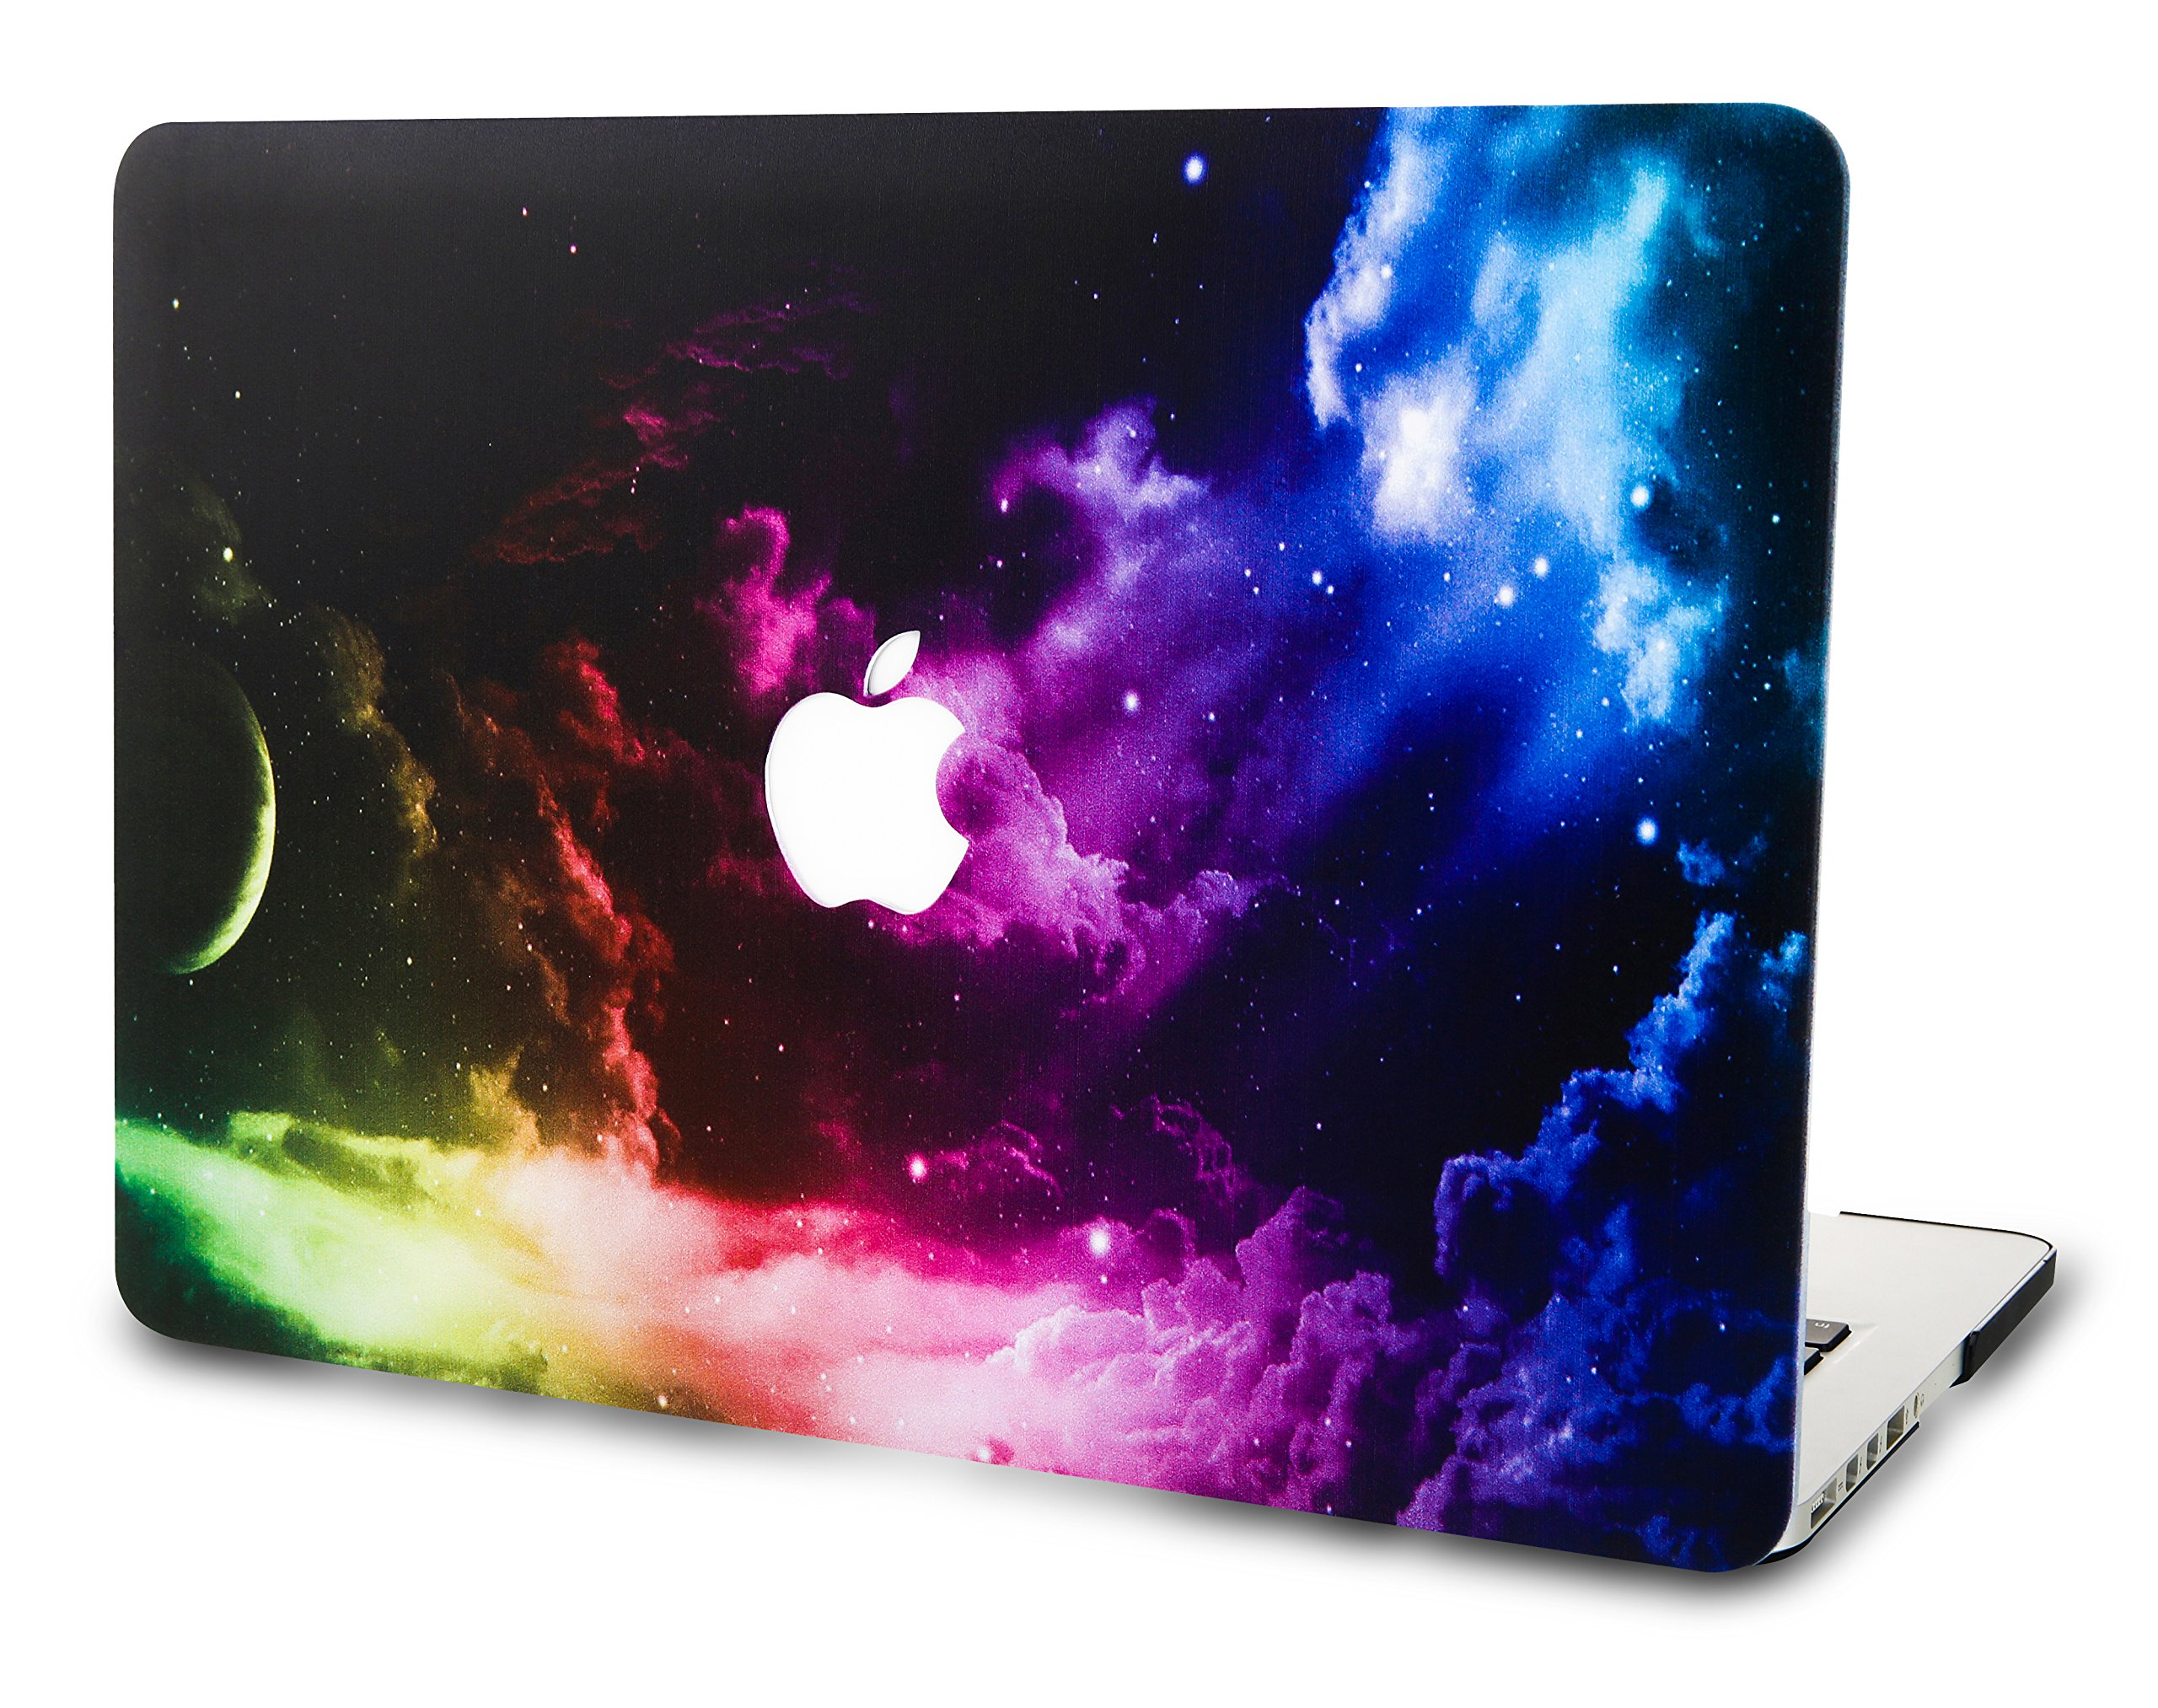 KEC Laptop Case for MacBook Pro 15'' (2018/2017/2016) Plastic Hard Shell Cover A1990/A1707 Touch Bar Space Galaxy (Color Space)